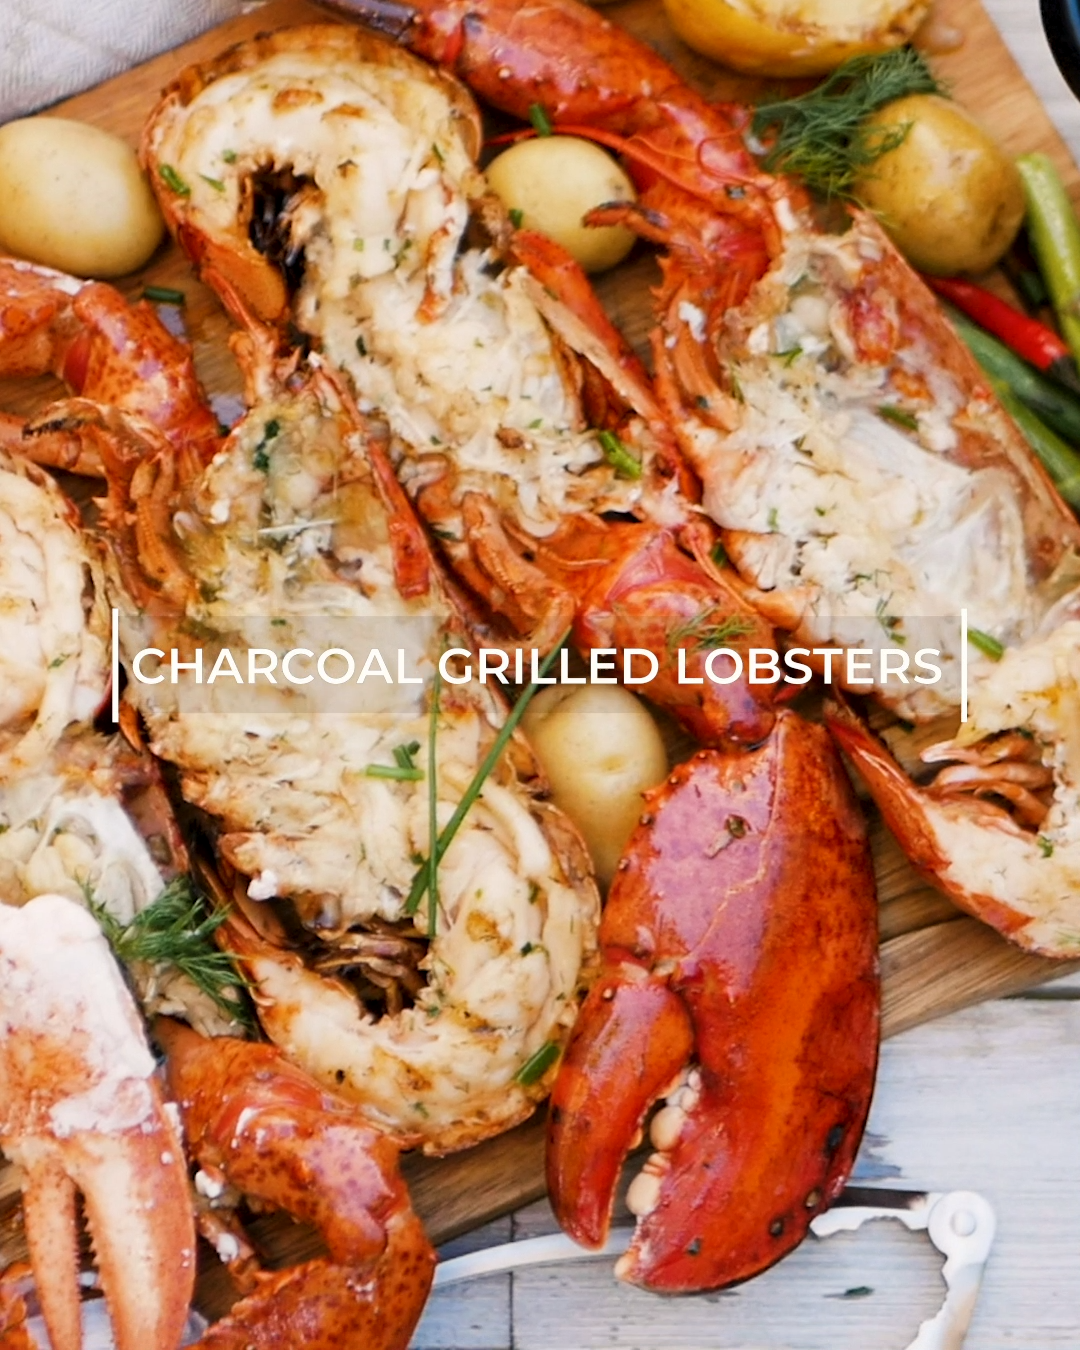 🦞Preparing a whole live lobster is a daunting task, but this recipe will get you grilling in no time. Impress your loved ones with a fancy seafood dinner tonight! #napoleongrill #bbq #grilling #seafood #lobster #recipe